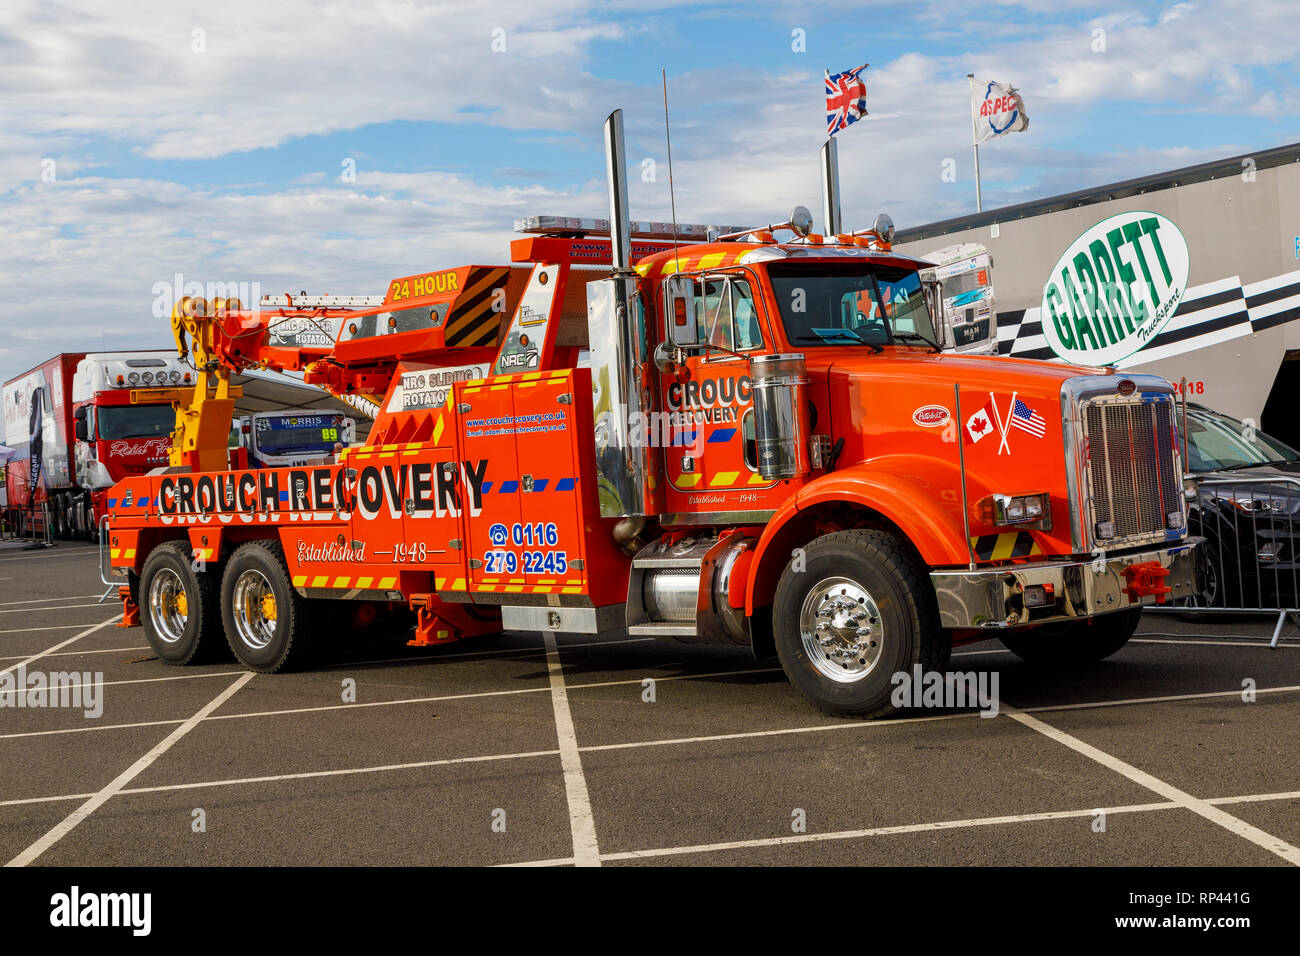 Recovery Truck Stock Photos & Recovery Truck Stock Images